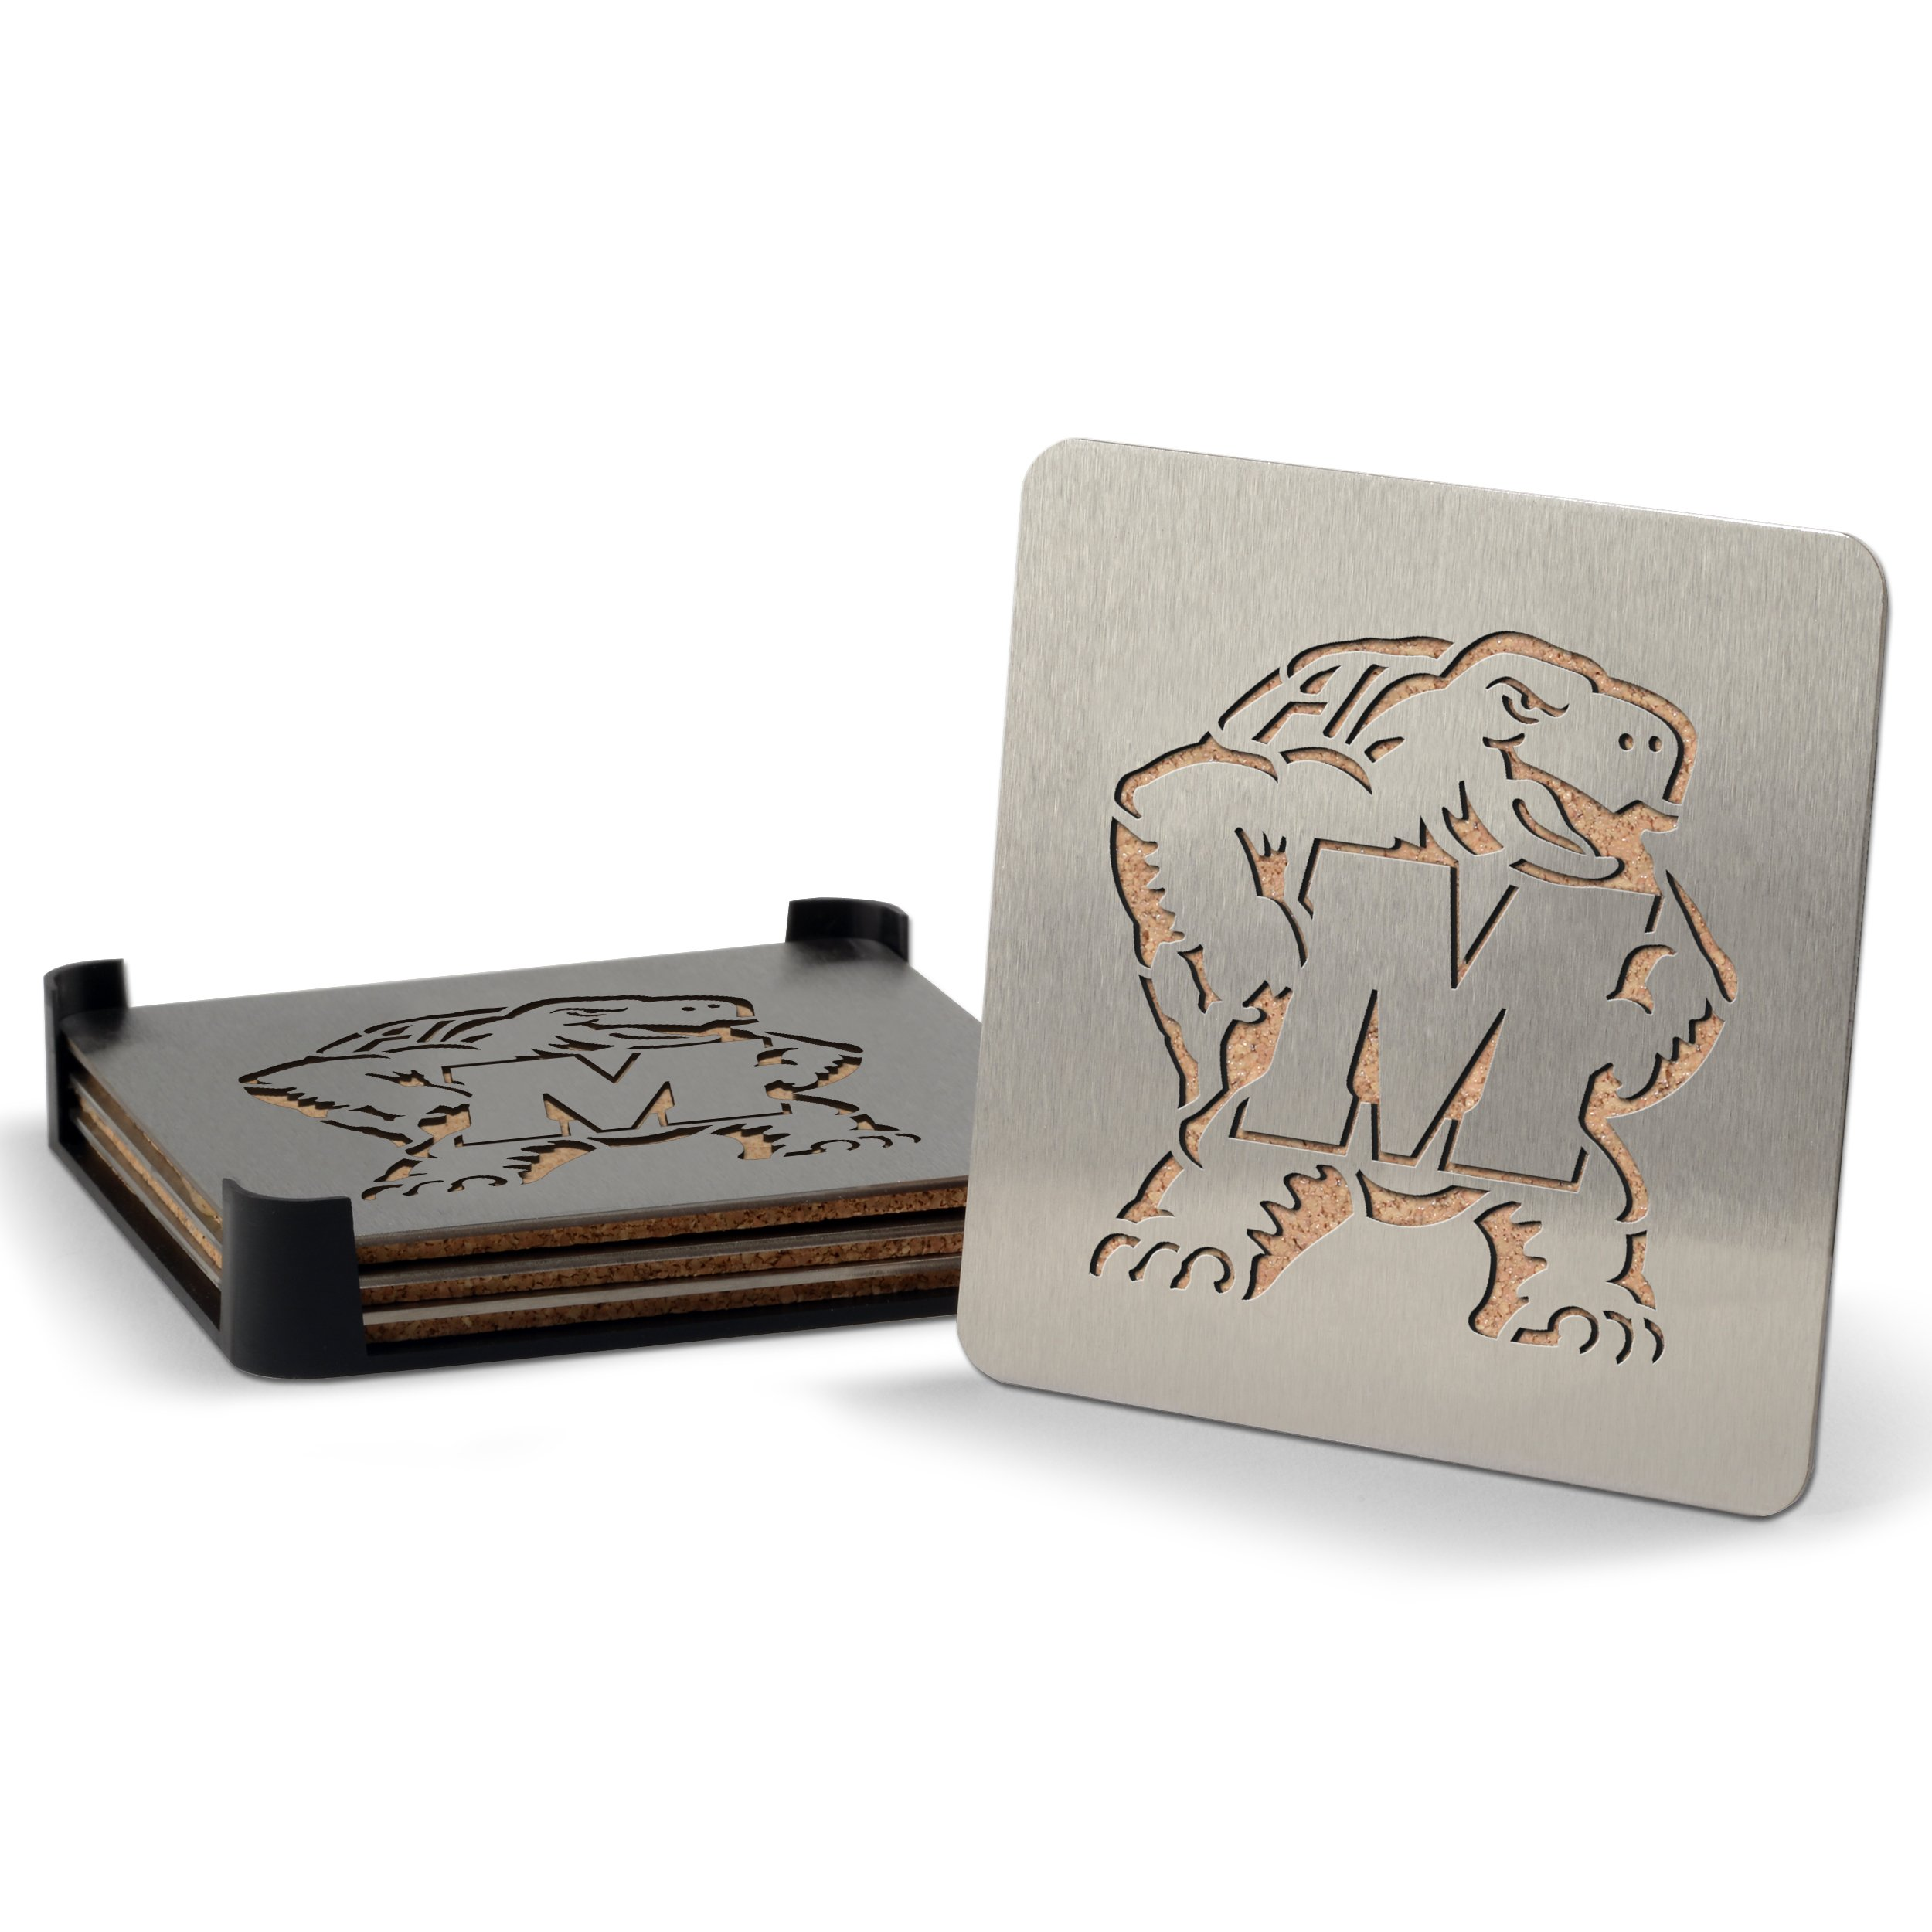 YouTheFan NCAA Maryland Terrapins 4-Piece Stainless Steel Boaster Drink Coaster by Sportula (Image #1)